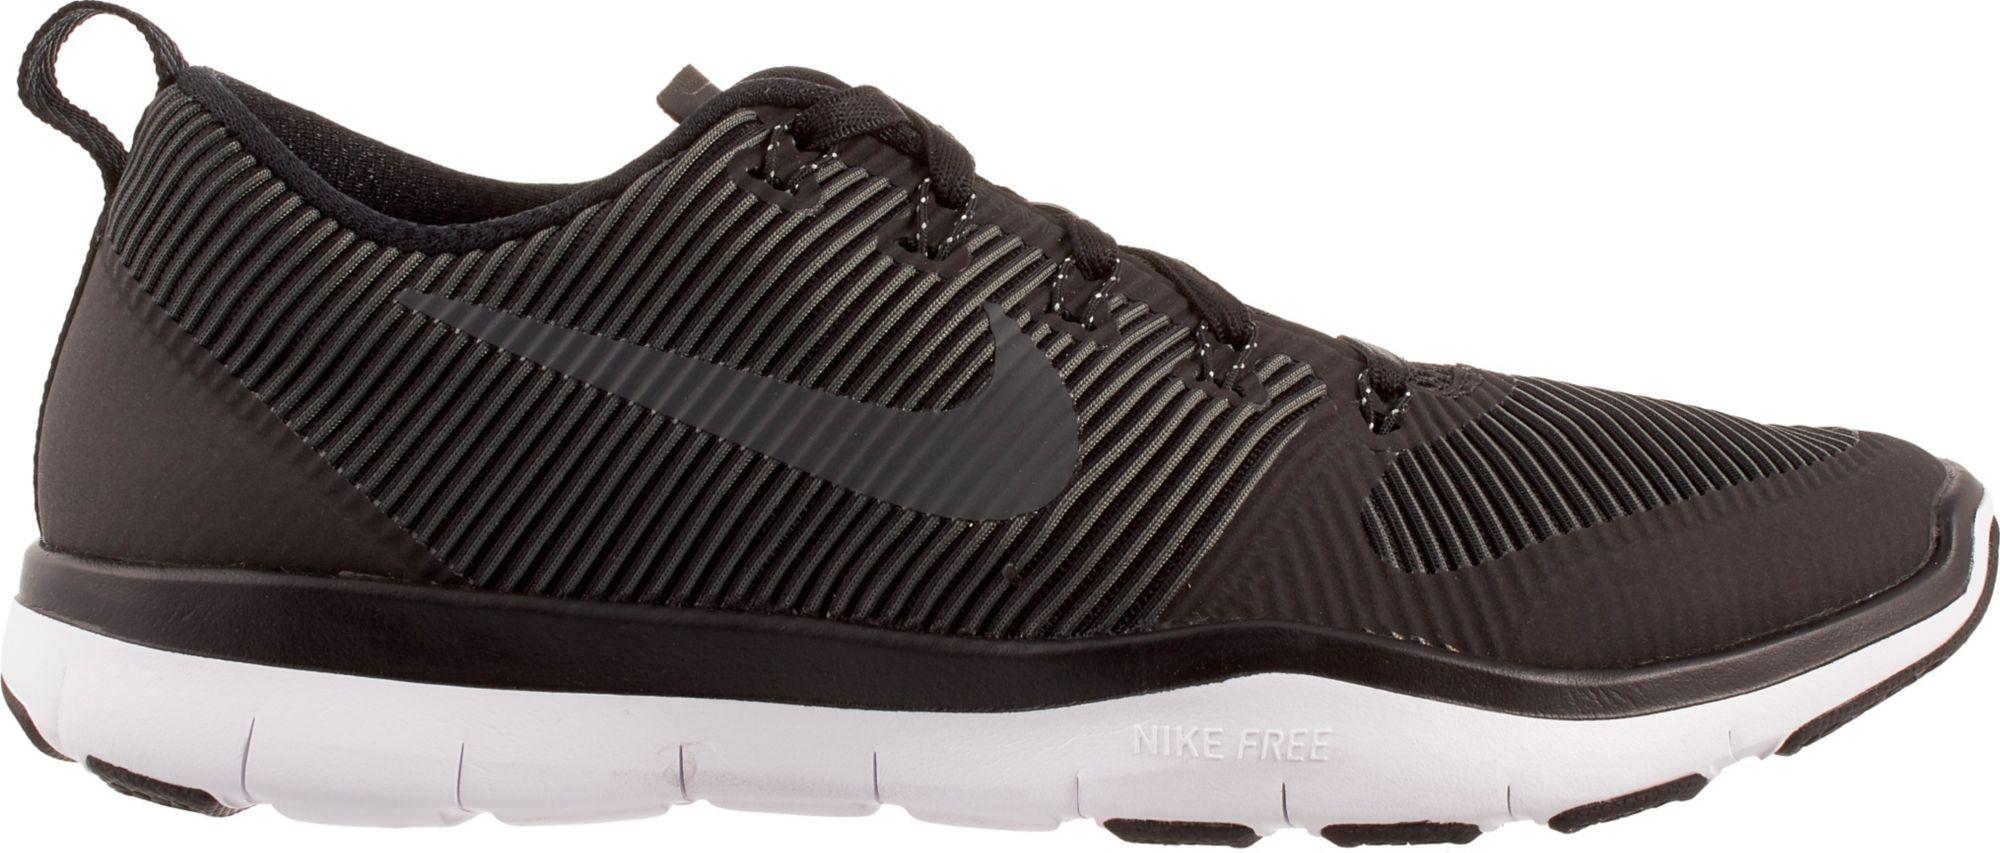 847ac683878e Lyst - Nike Free Train Versatility Training Shoes in Black for Men